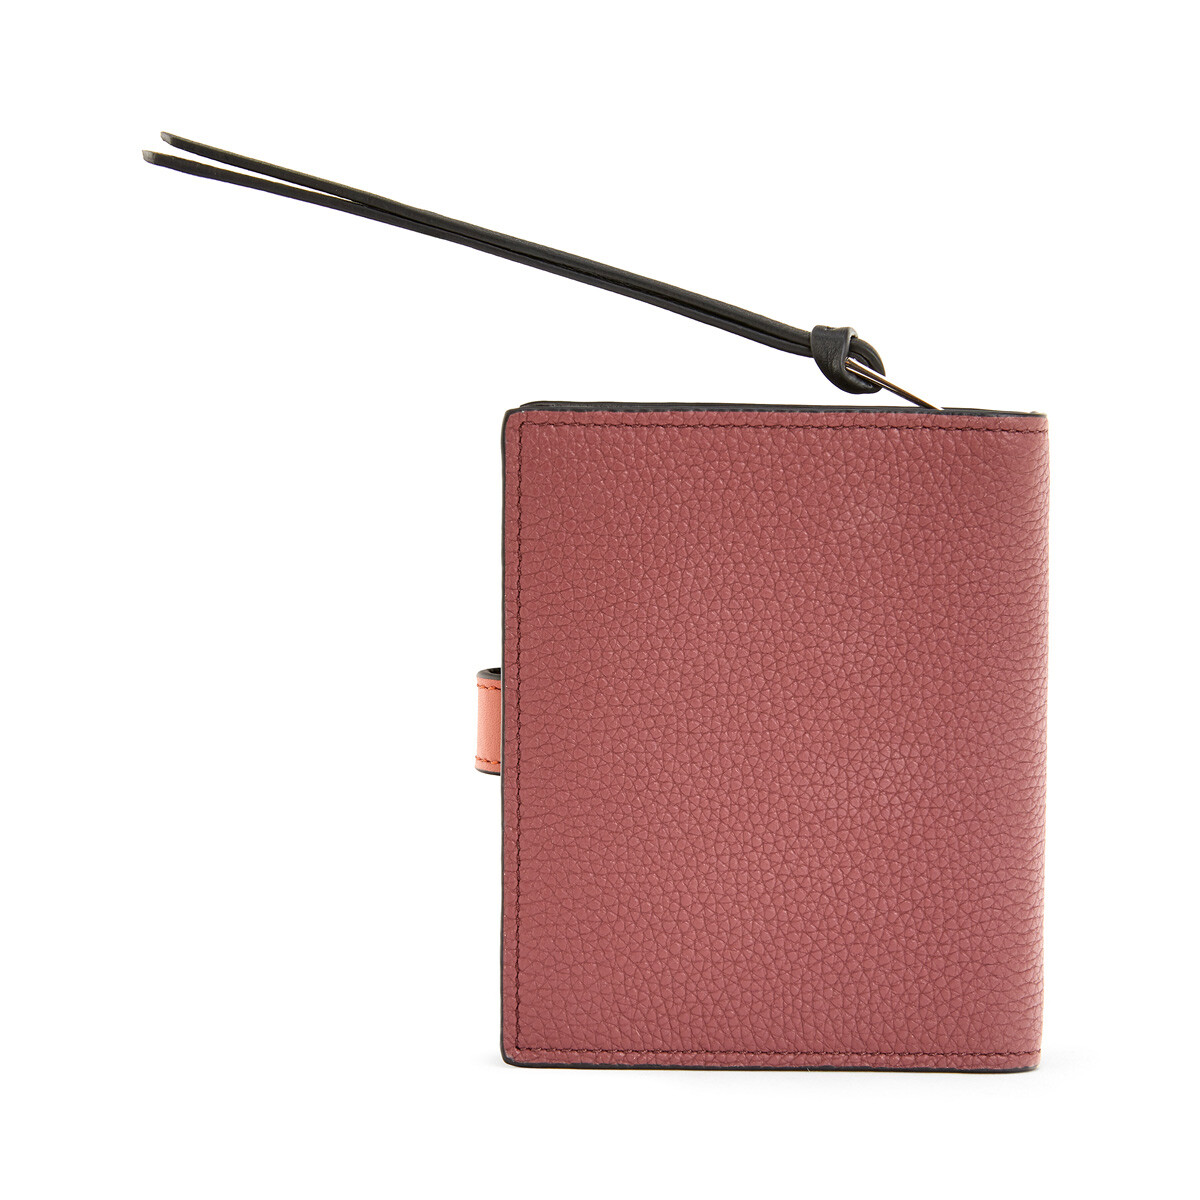 LOEWE Compact Zip Wallet Wine/Burnt Orange  front